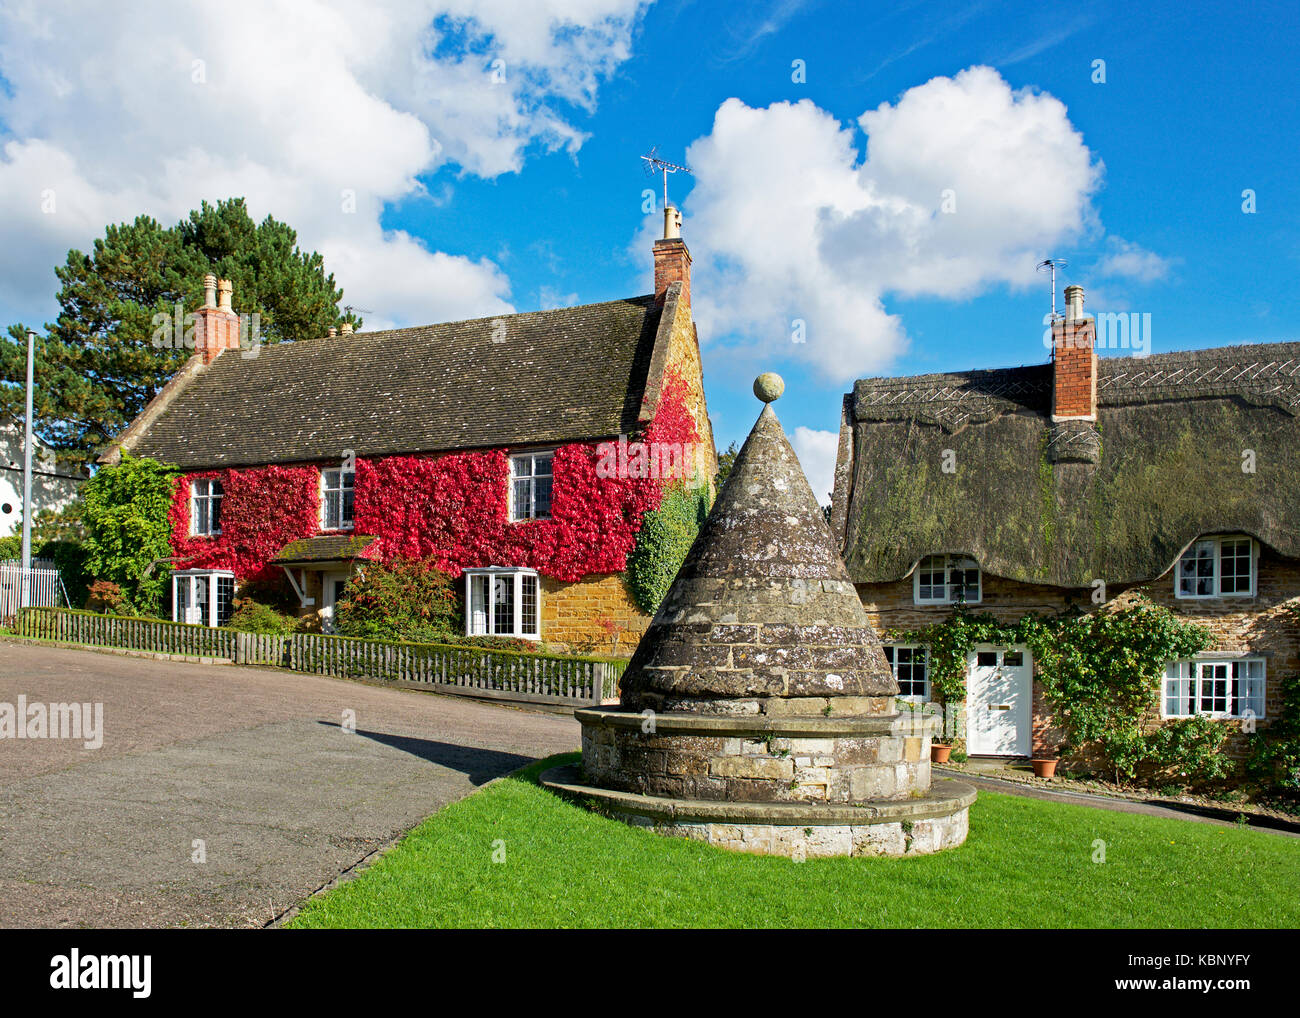 buttercross-on-village-green-hallaton-leicestershire-england-uk-KBNYFY.jpg